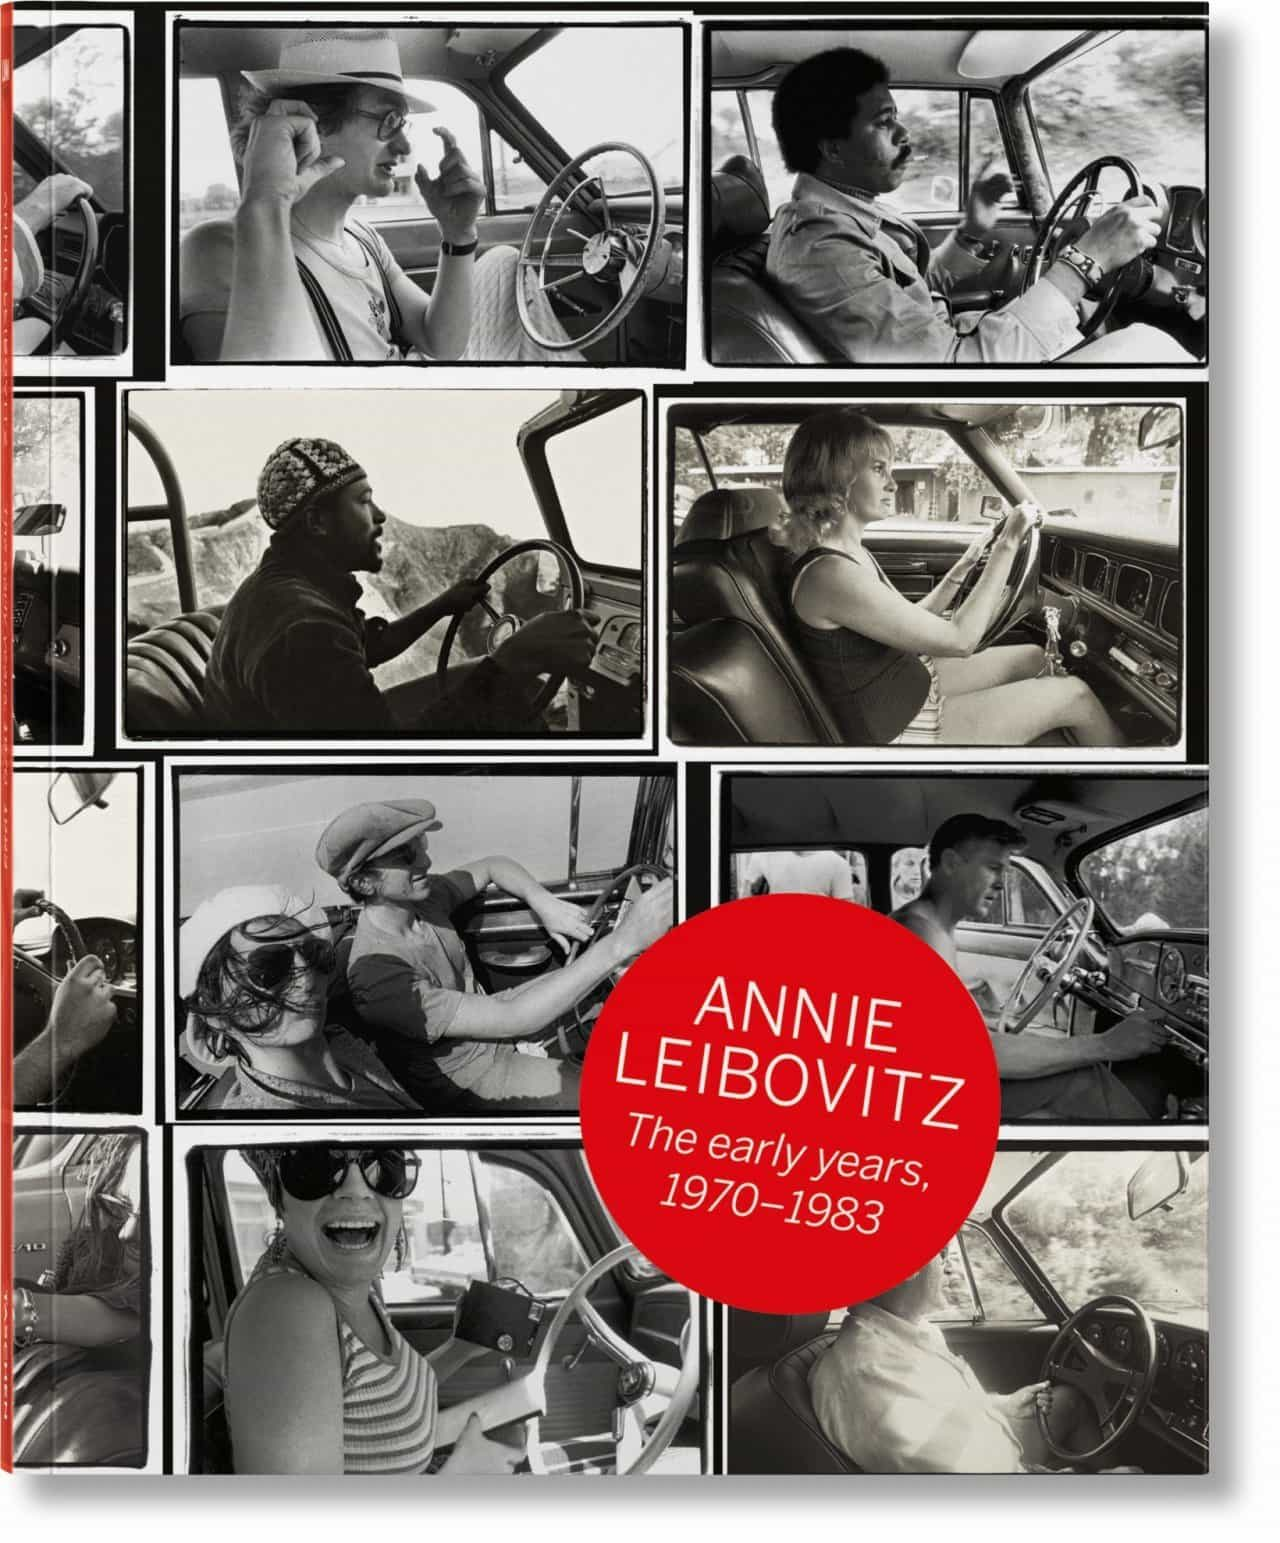 Annie Leibovitz: The Early Years, 1970-1983 (español, Inglés, Ita Liano) por Annie Leibovitz